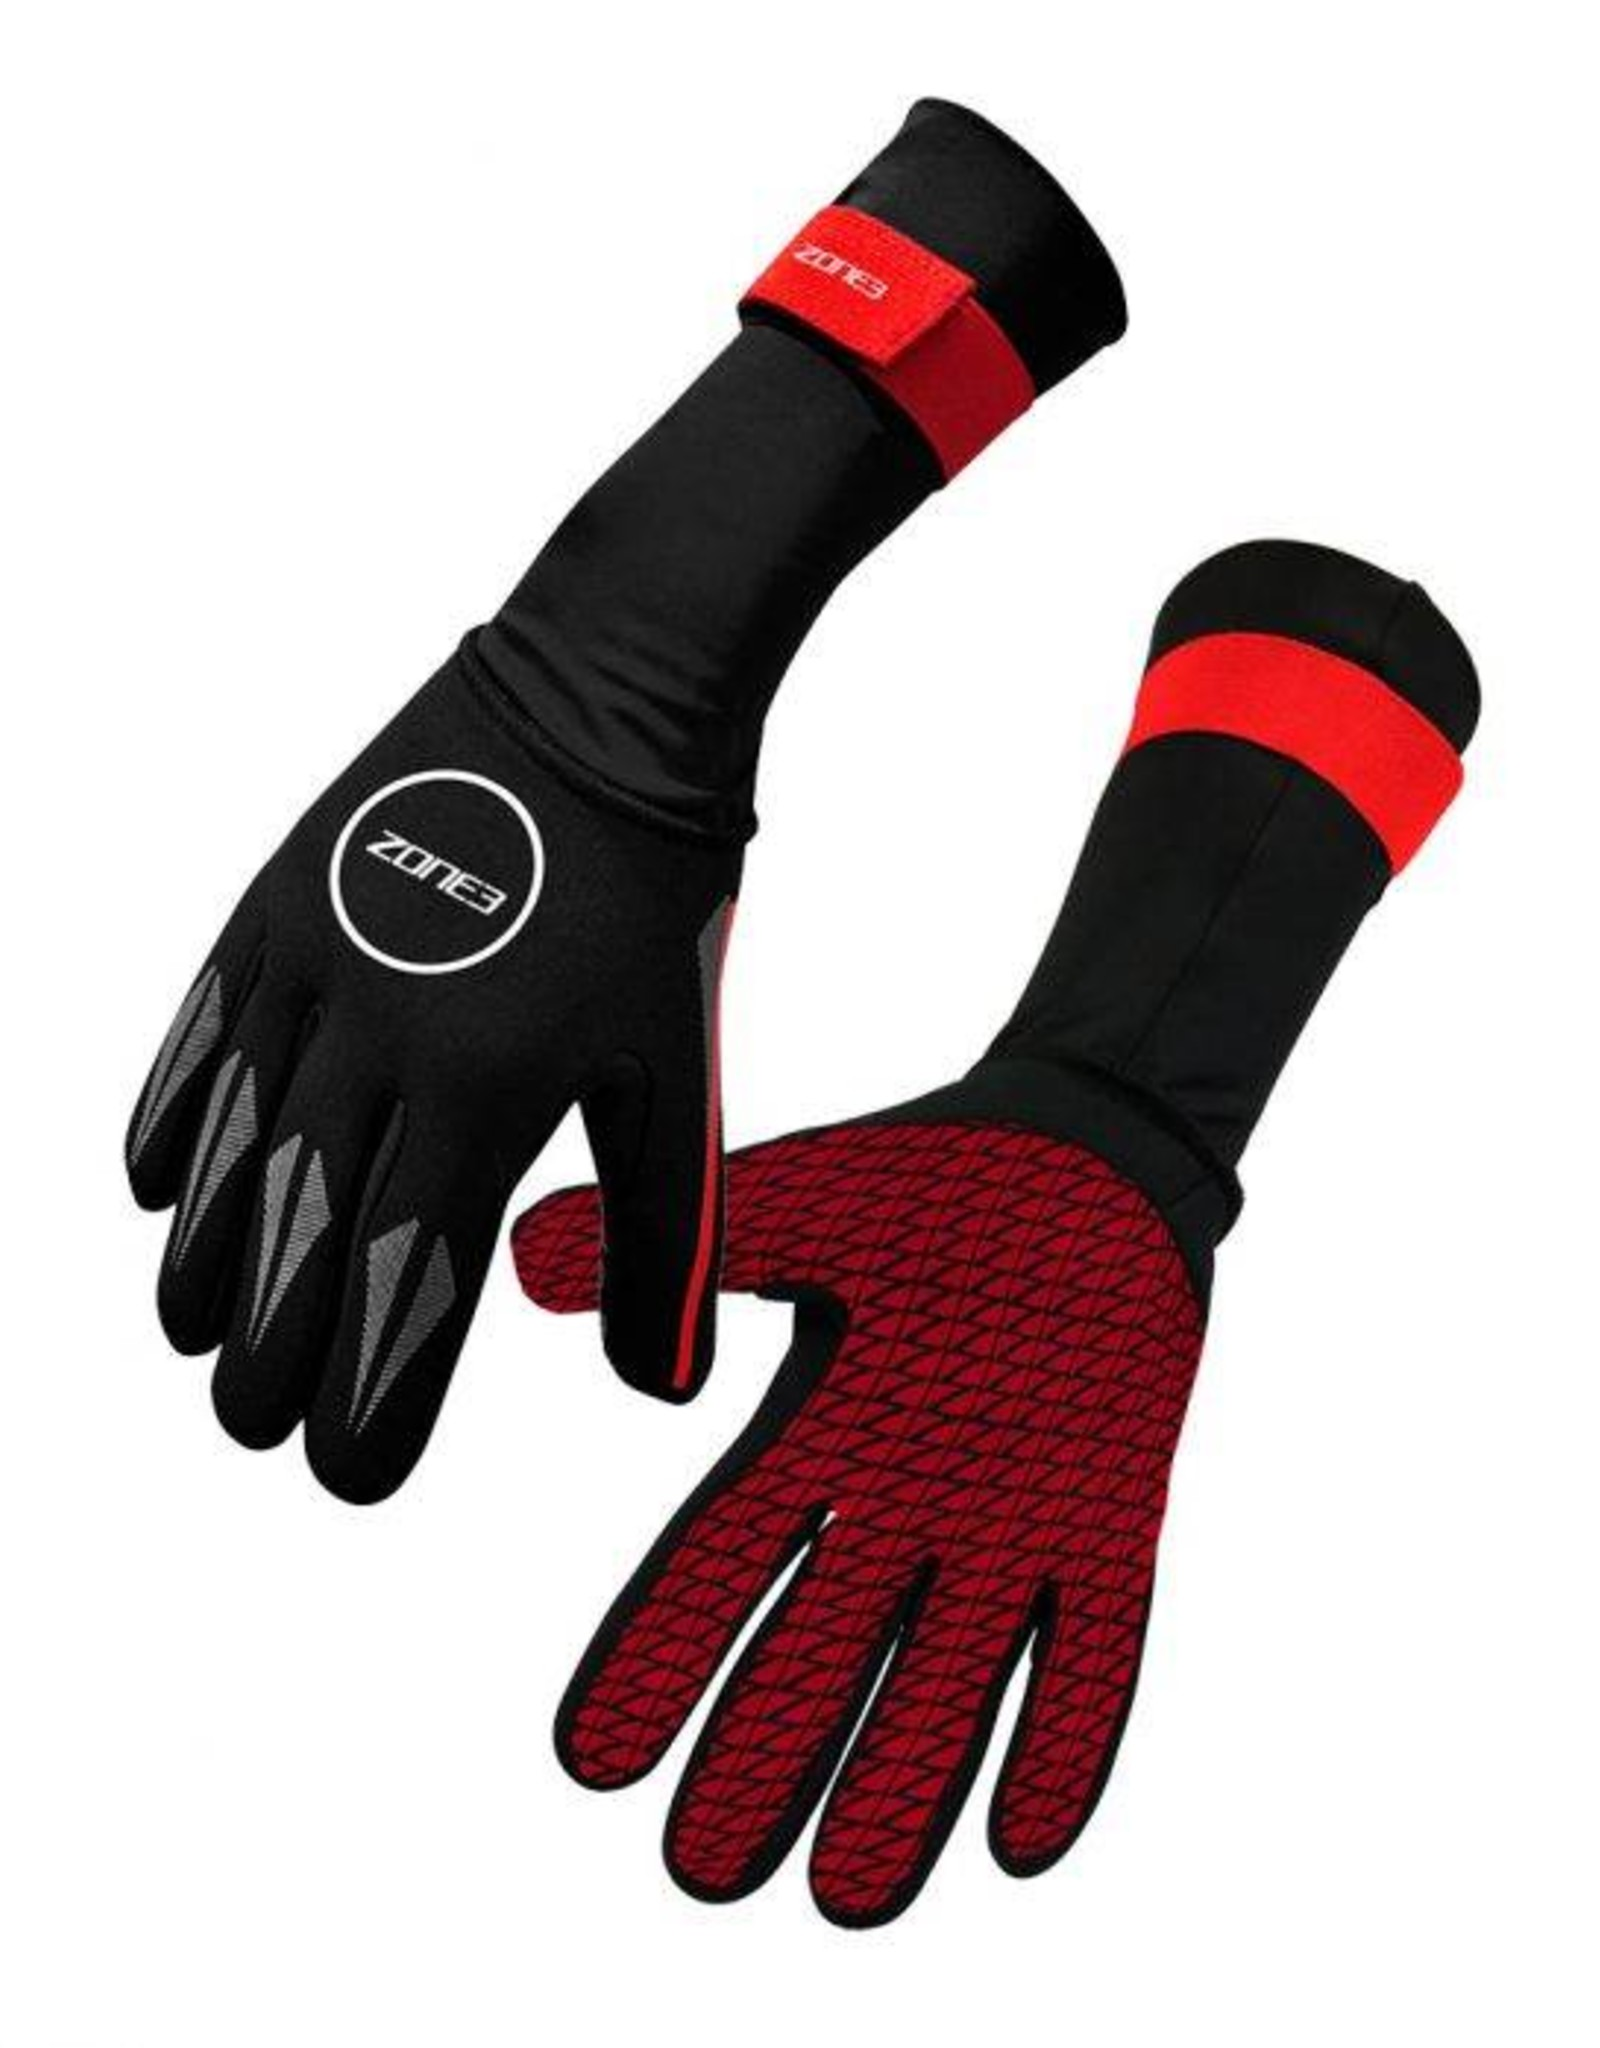 Zone 3 Zone 3 Neoprene Swim Gloves